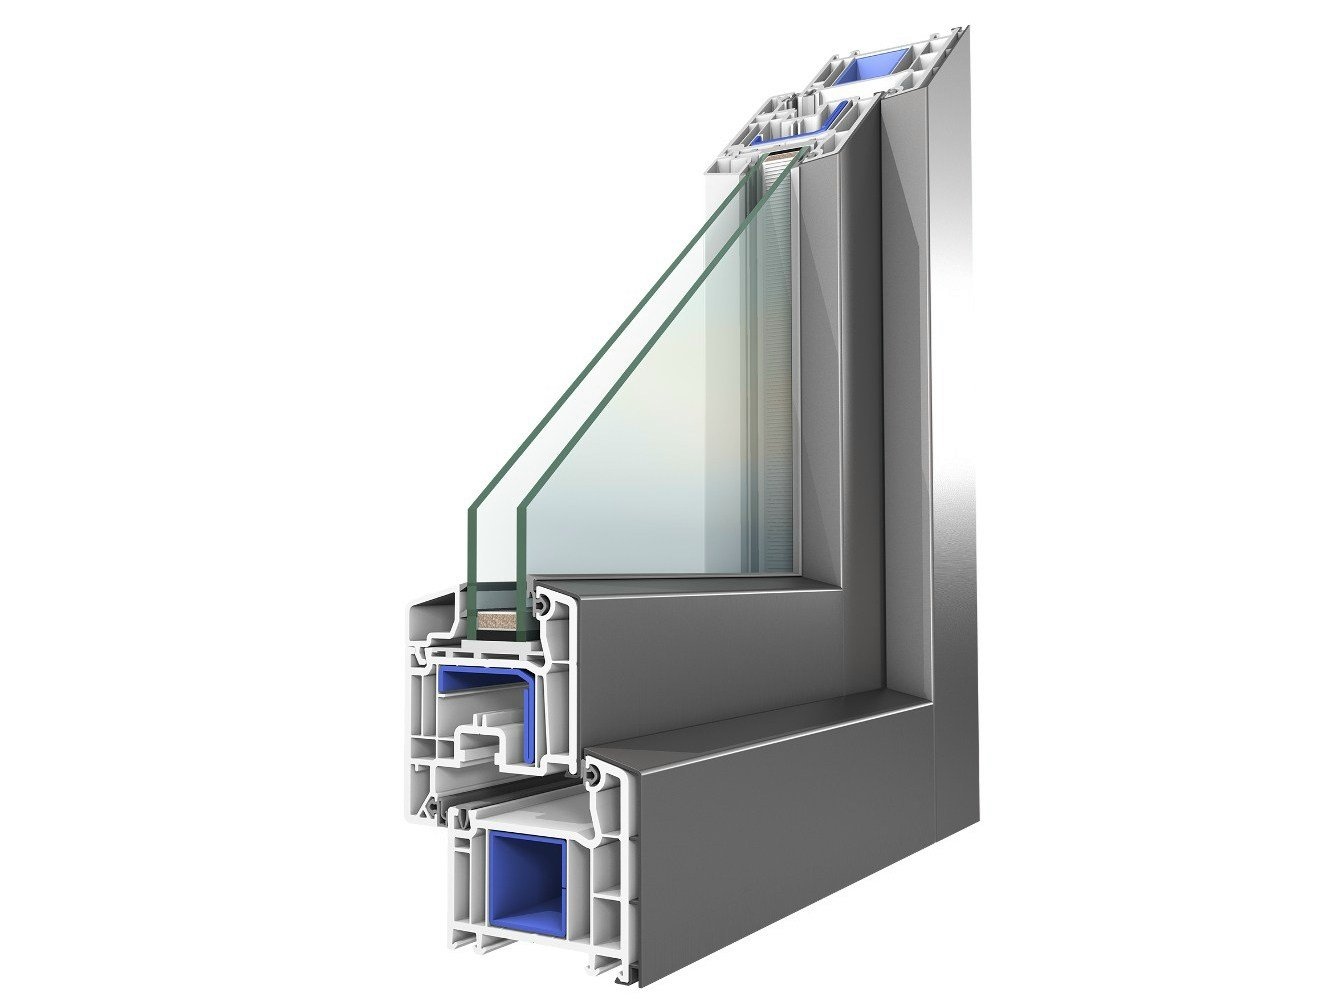 Double Glazing Product : Aluminium and pvc double glazed window koncept alu by